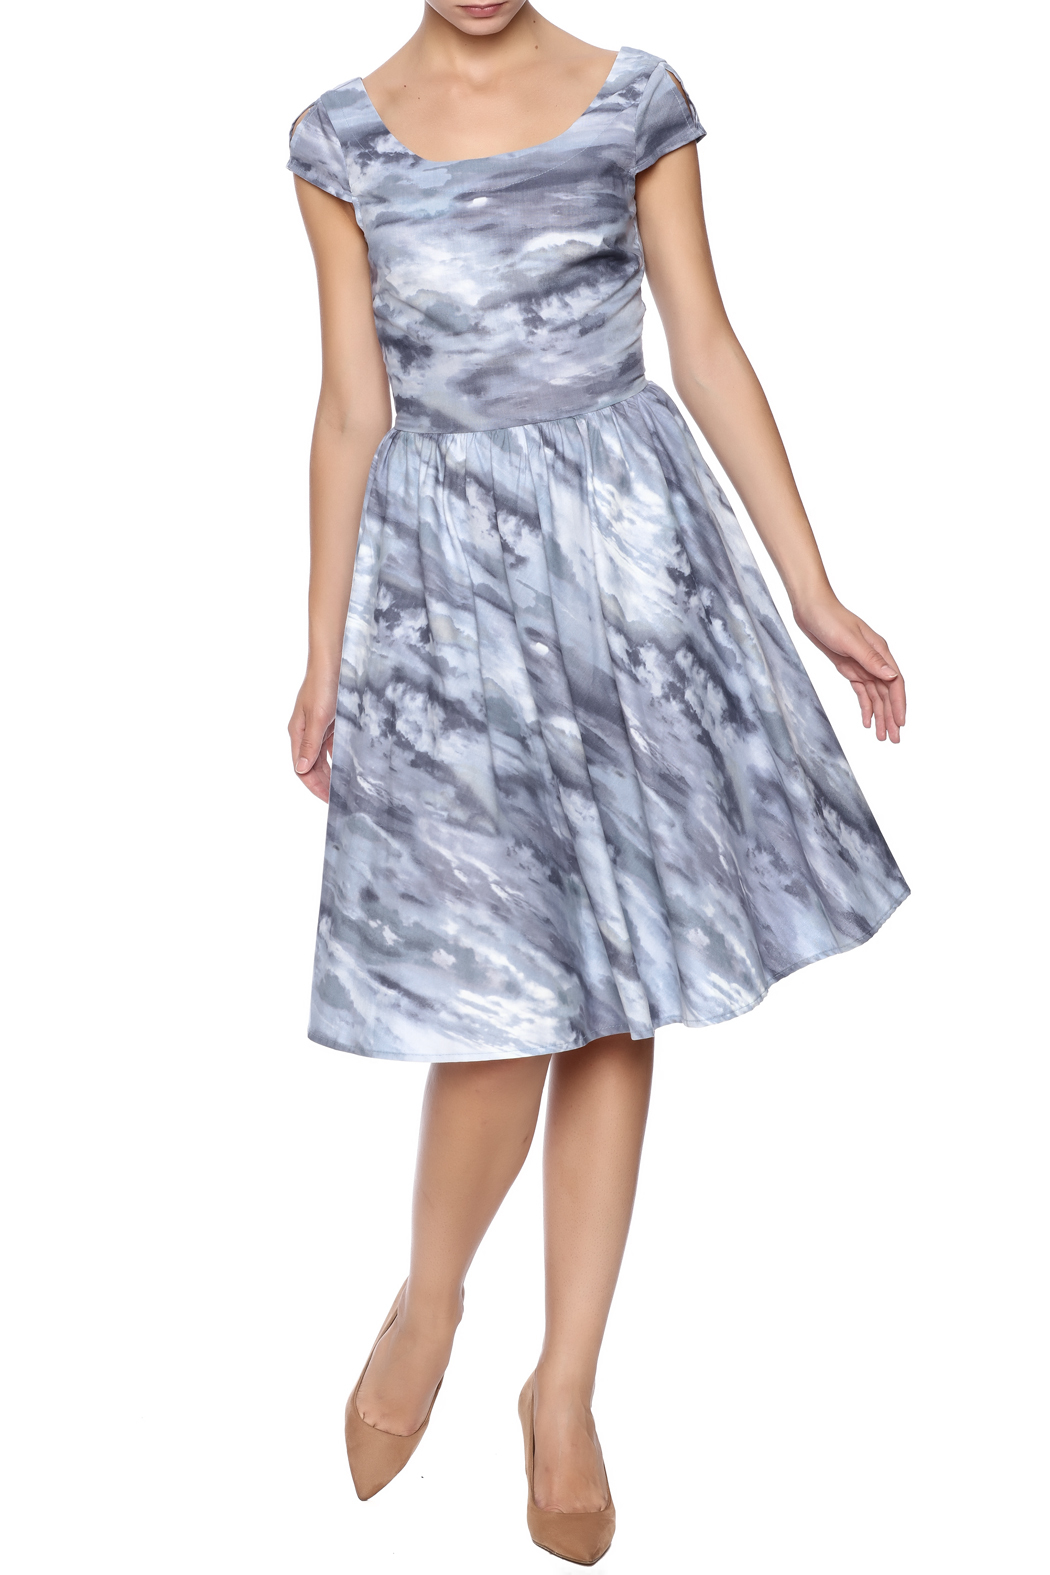 Retrolicious Cloudy Day Dress - Main Image